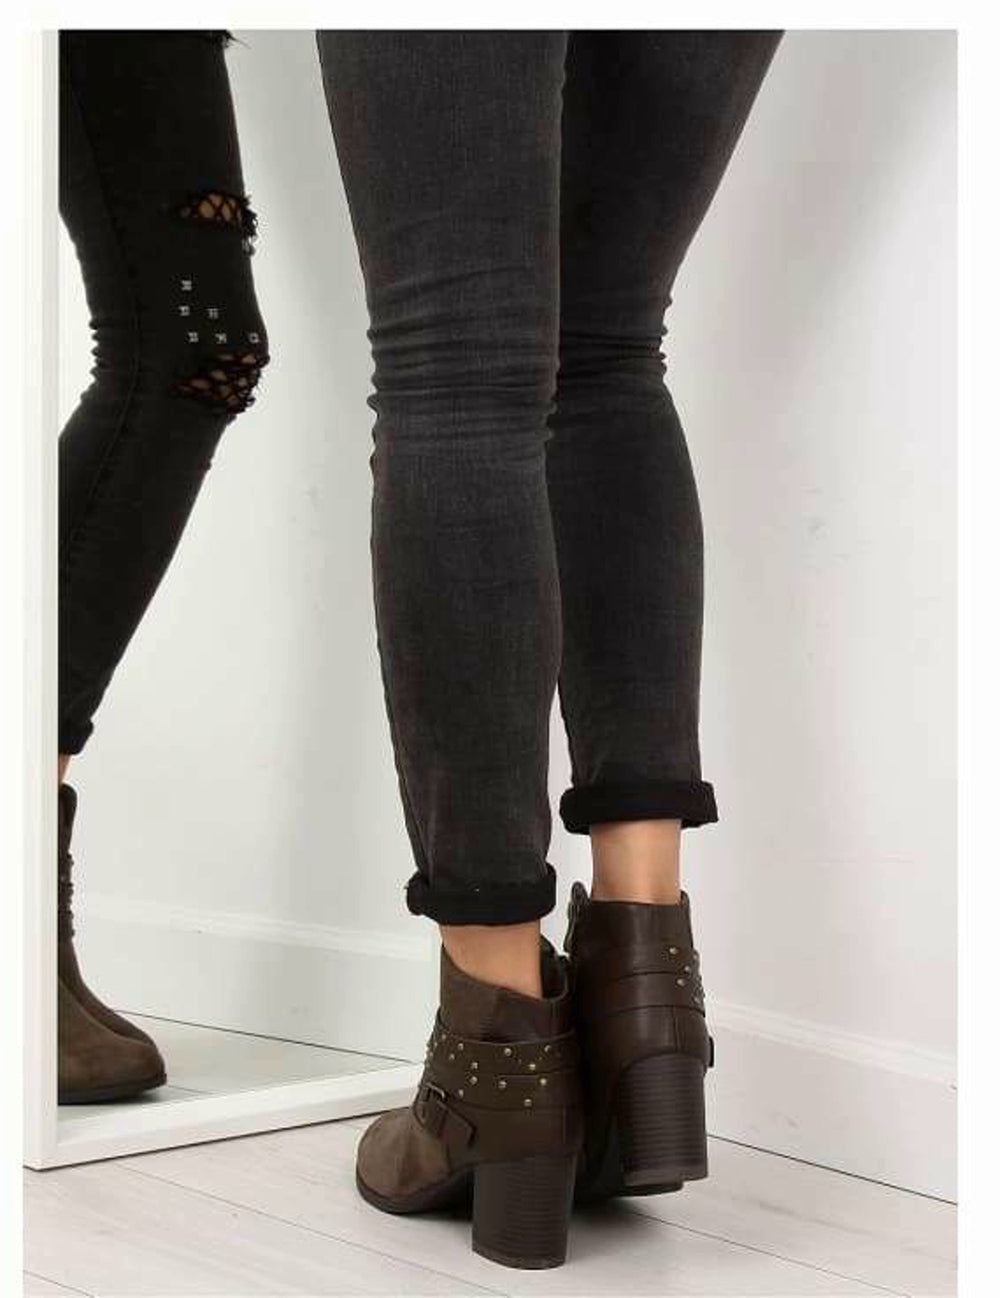 Block Heel Ankle Boots - Footwear Ankle boots, block heel boots, boots, Brown boots, Footwear